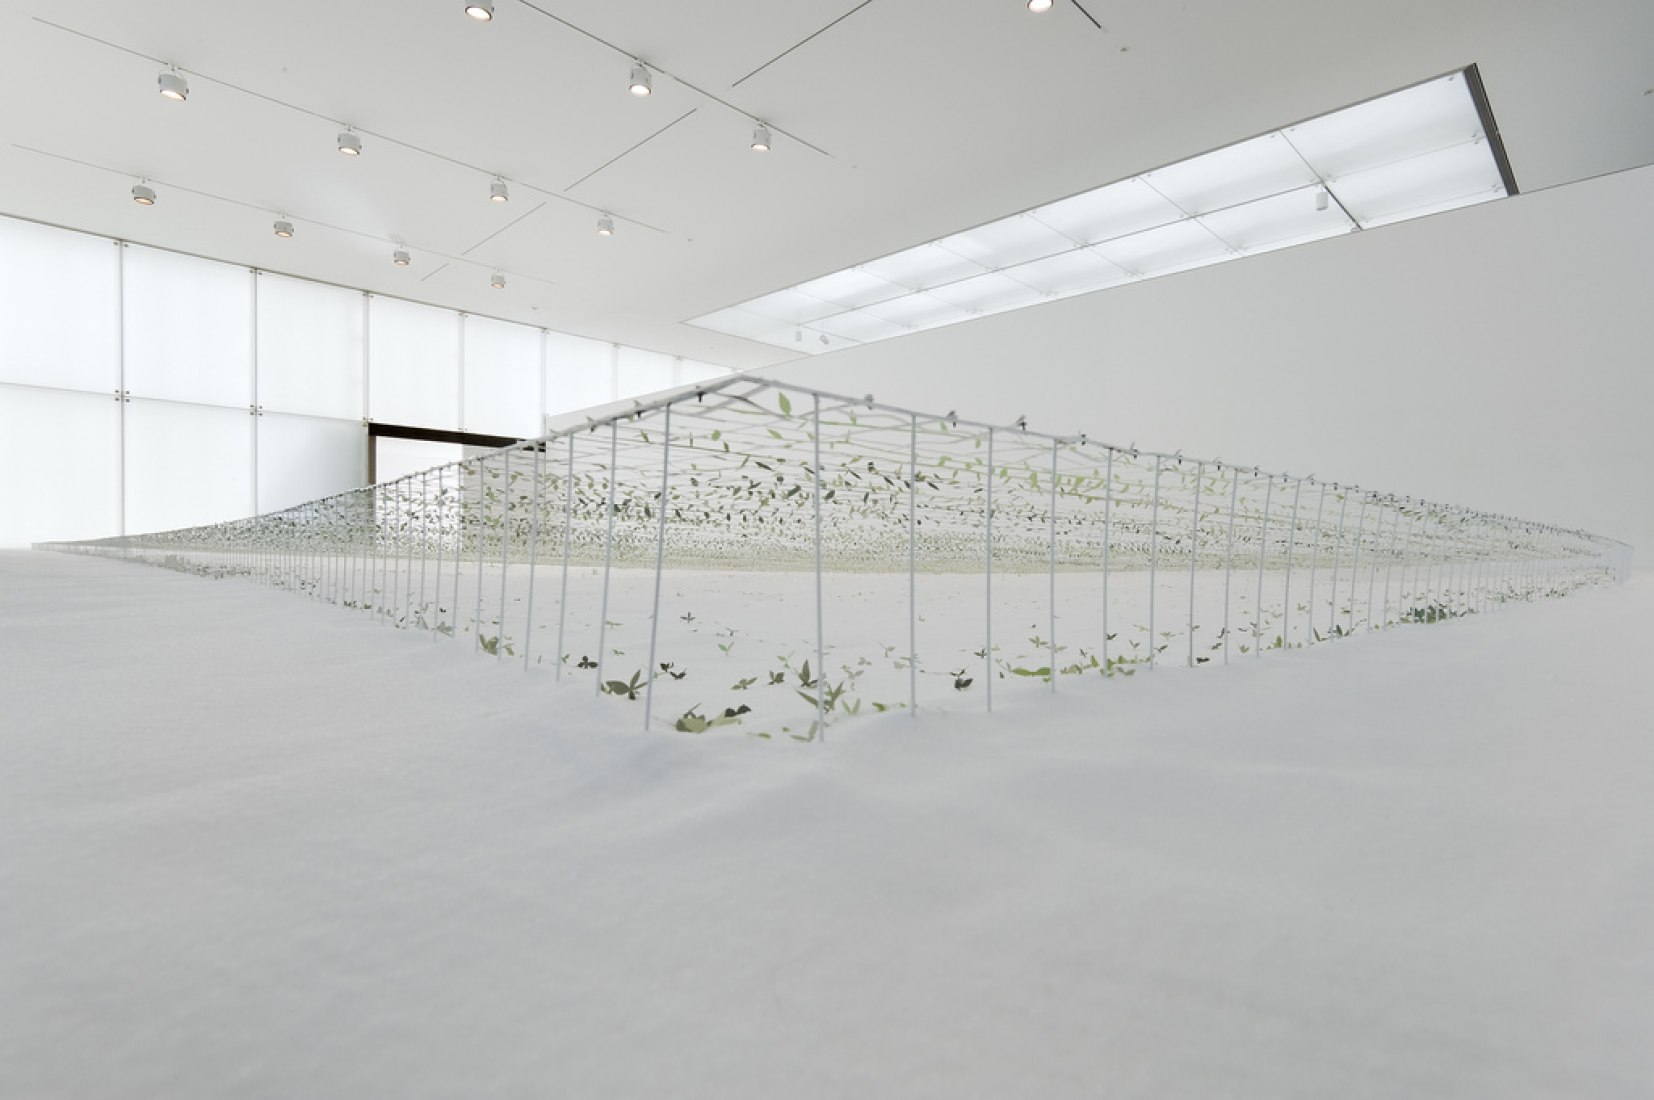 Junya Ishigami, Another scale of architecture - horizon, Toyota Municipal Museum of Art, 2010., courtesy Gallery Koyanagi © junya.ishigami+associates, photograph Yasushi Ichikawa.